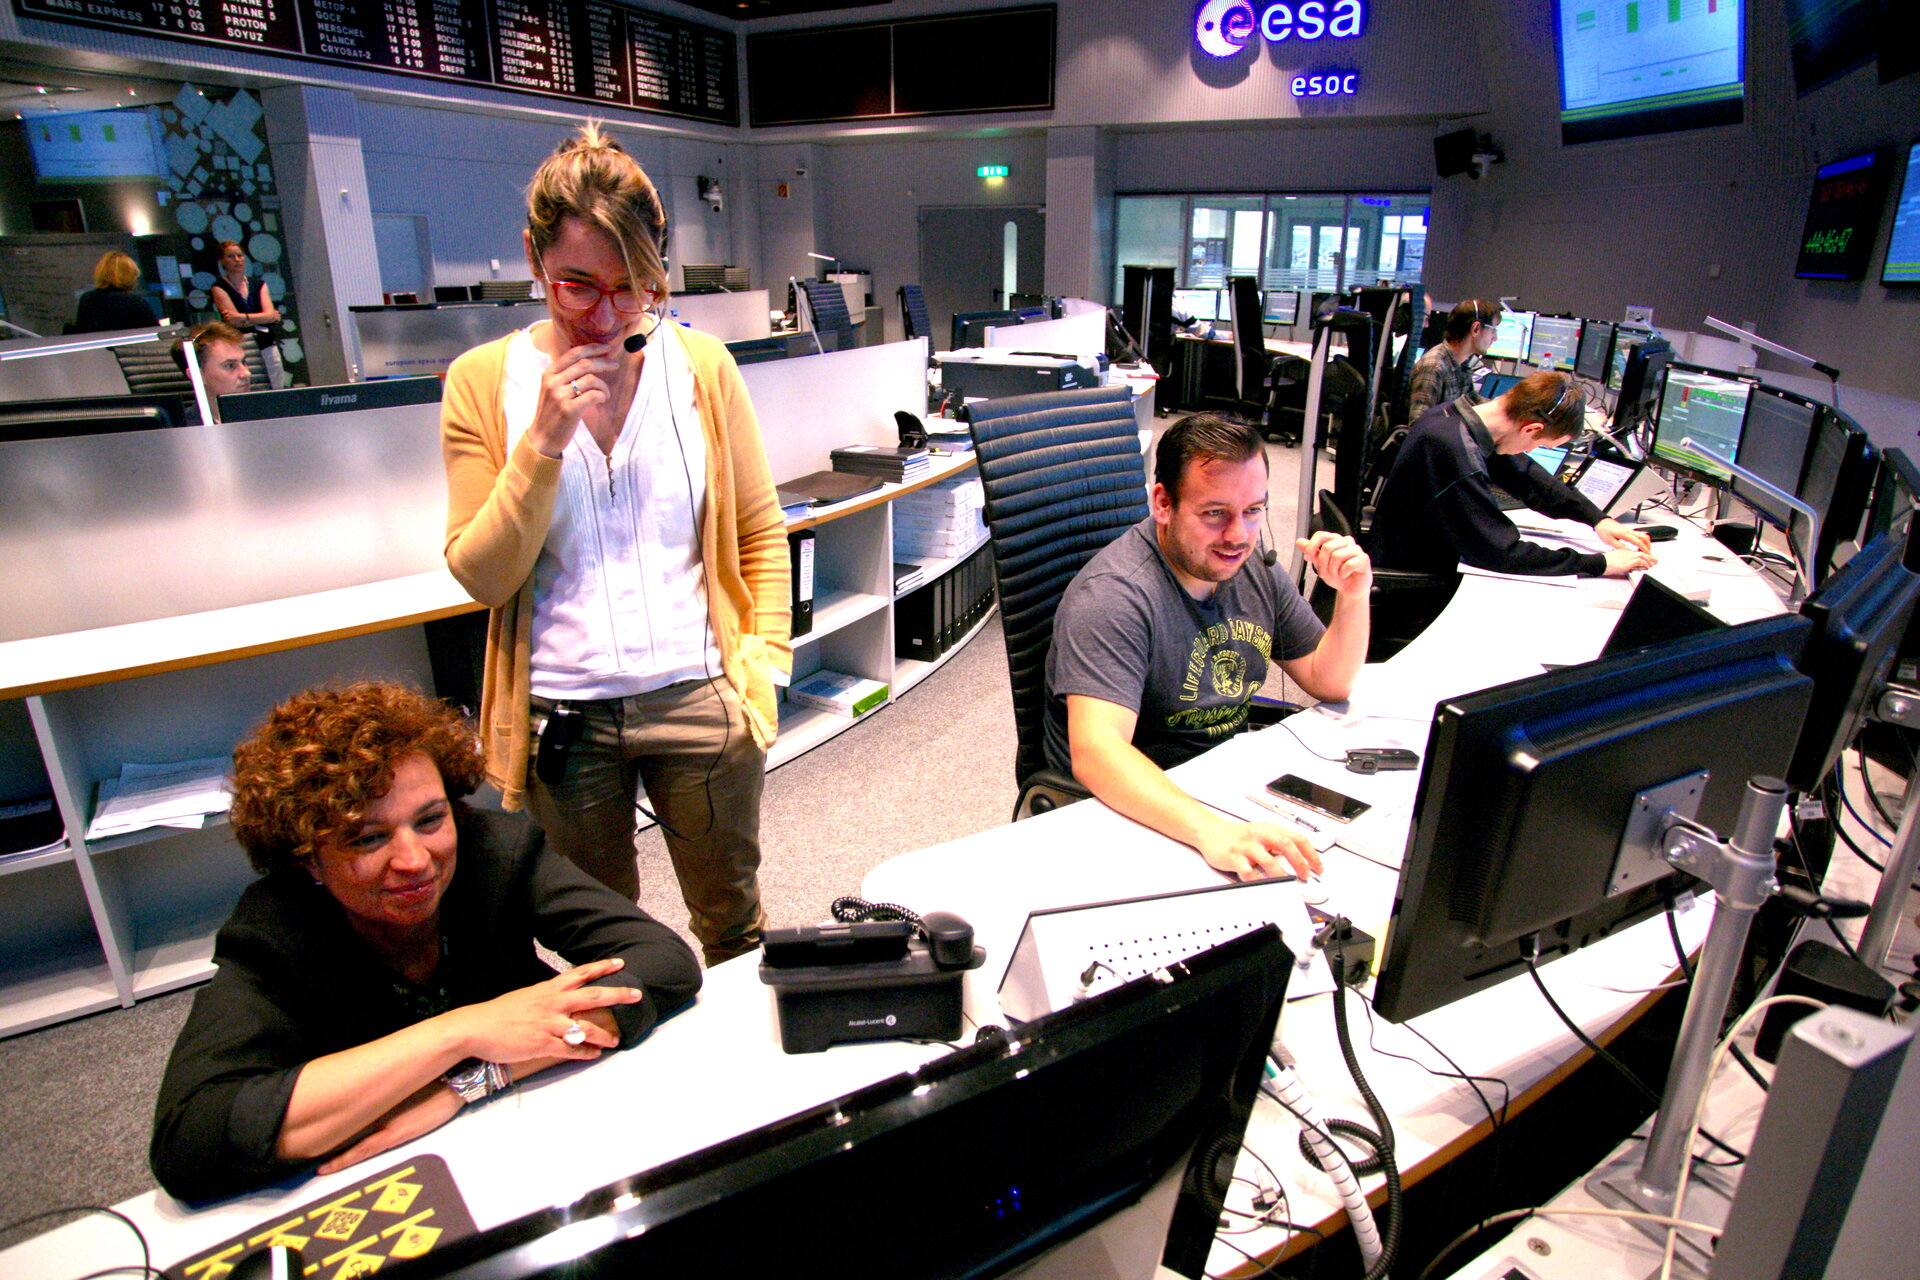 Teams at mission control in BepiColombo simulation